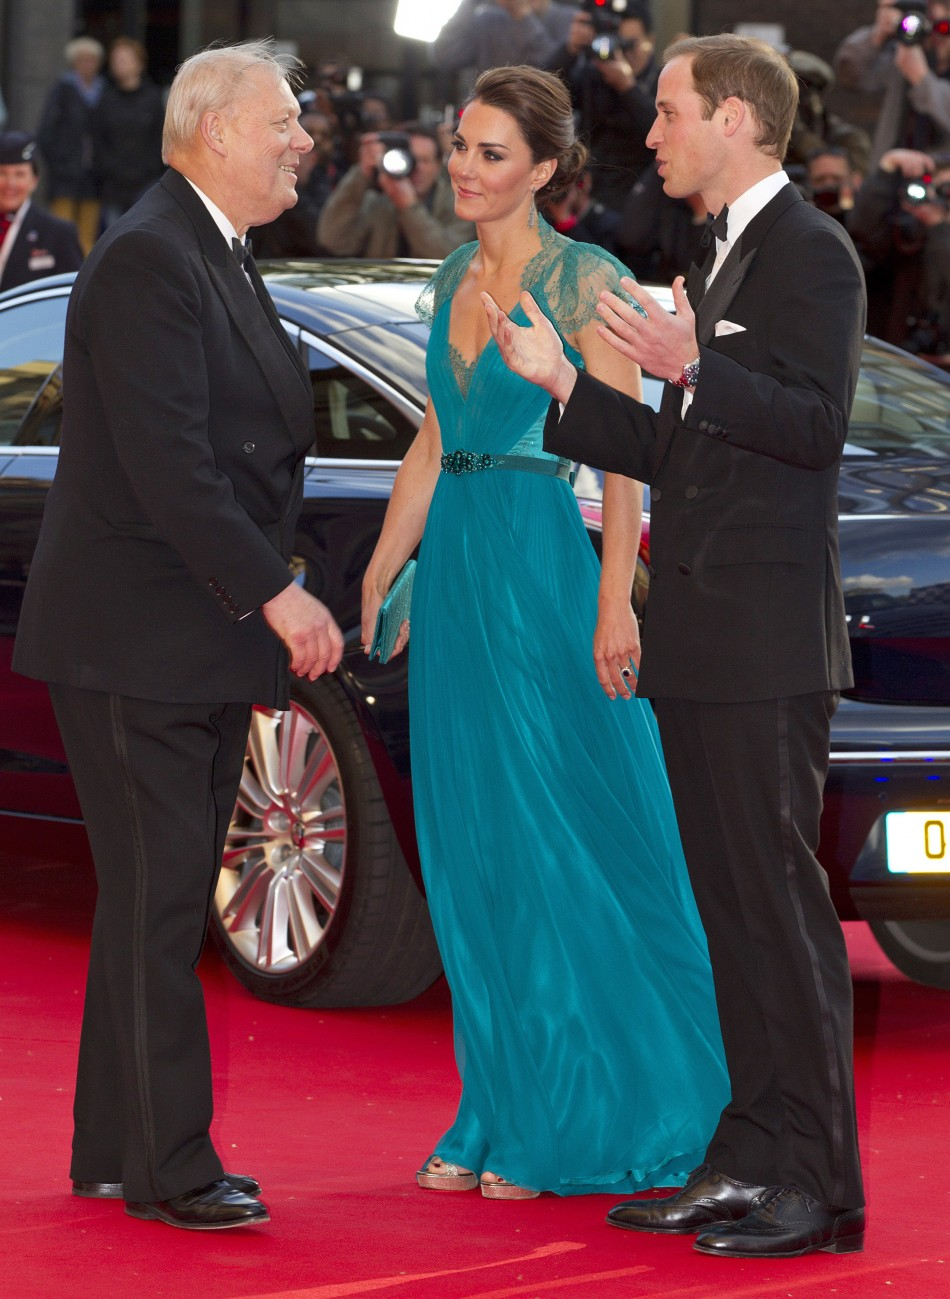 Britains Prince William and Catherine, Duchess of Cambridge arrive for the Our Greatest Team Rises event to celebrate TeamGB and ParalympicsGB at the Royal Albert Hall, in central London